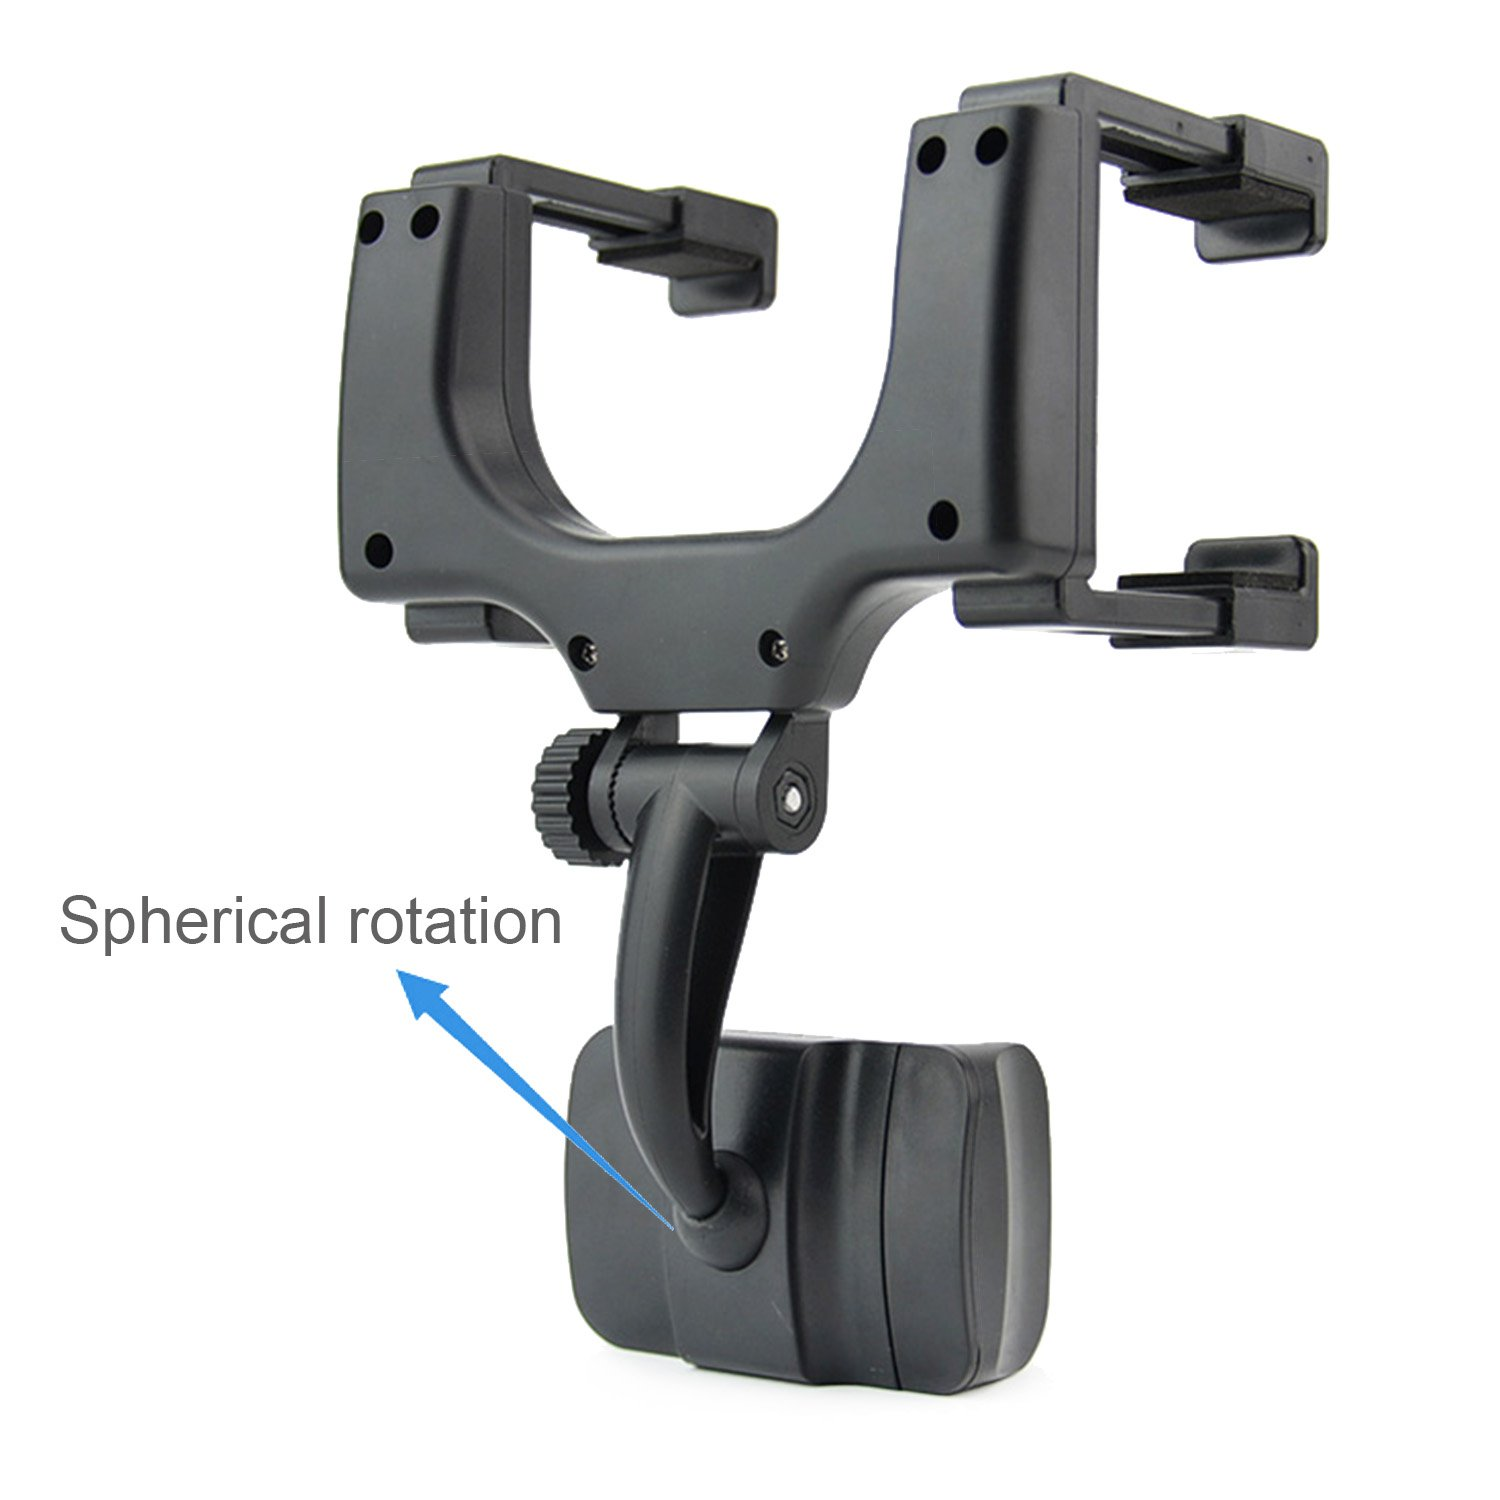 Car Rearview Mirror Mount Truck Auto Cell Phone Holder for iPhone X//8//8Plus//7//6s Google Nexus Samsung Galaxy S8//S7//S6 Edge 4333131235 GPS//PDA // MP3 // MP4 Devices and More Black INCART Magnetic Car Mount